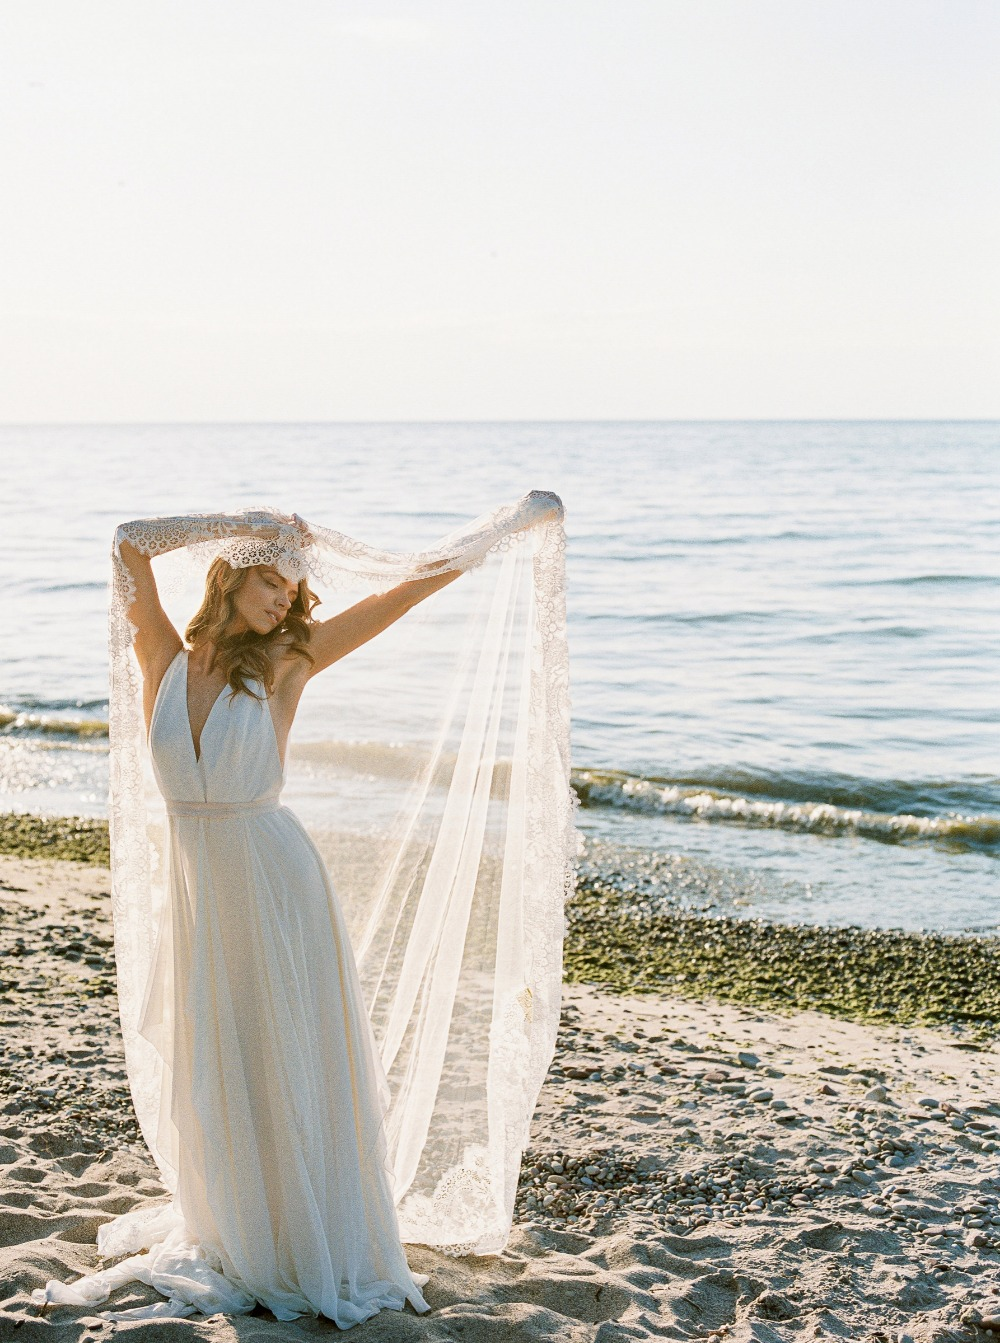 Bride and veil portrait idea at the beach